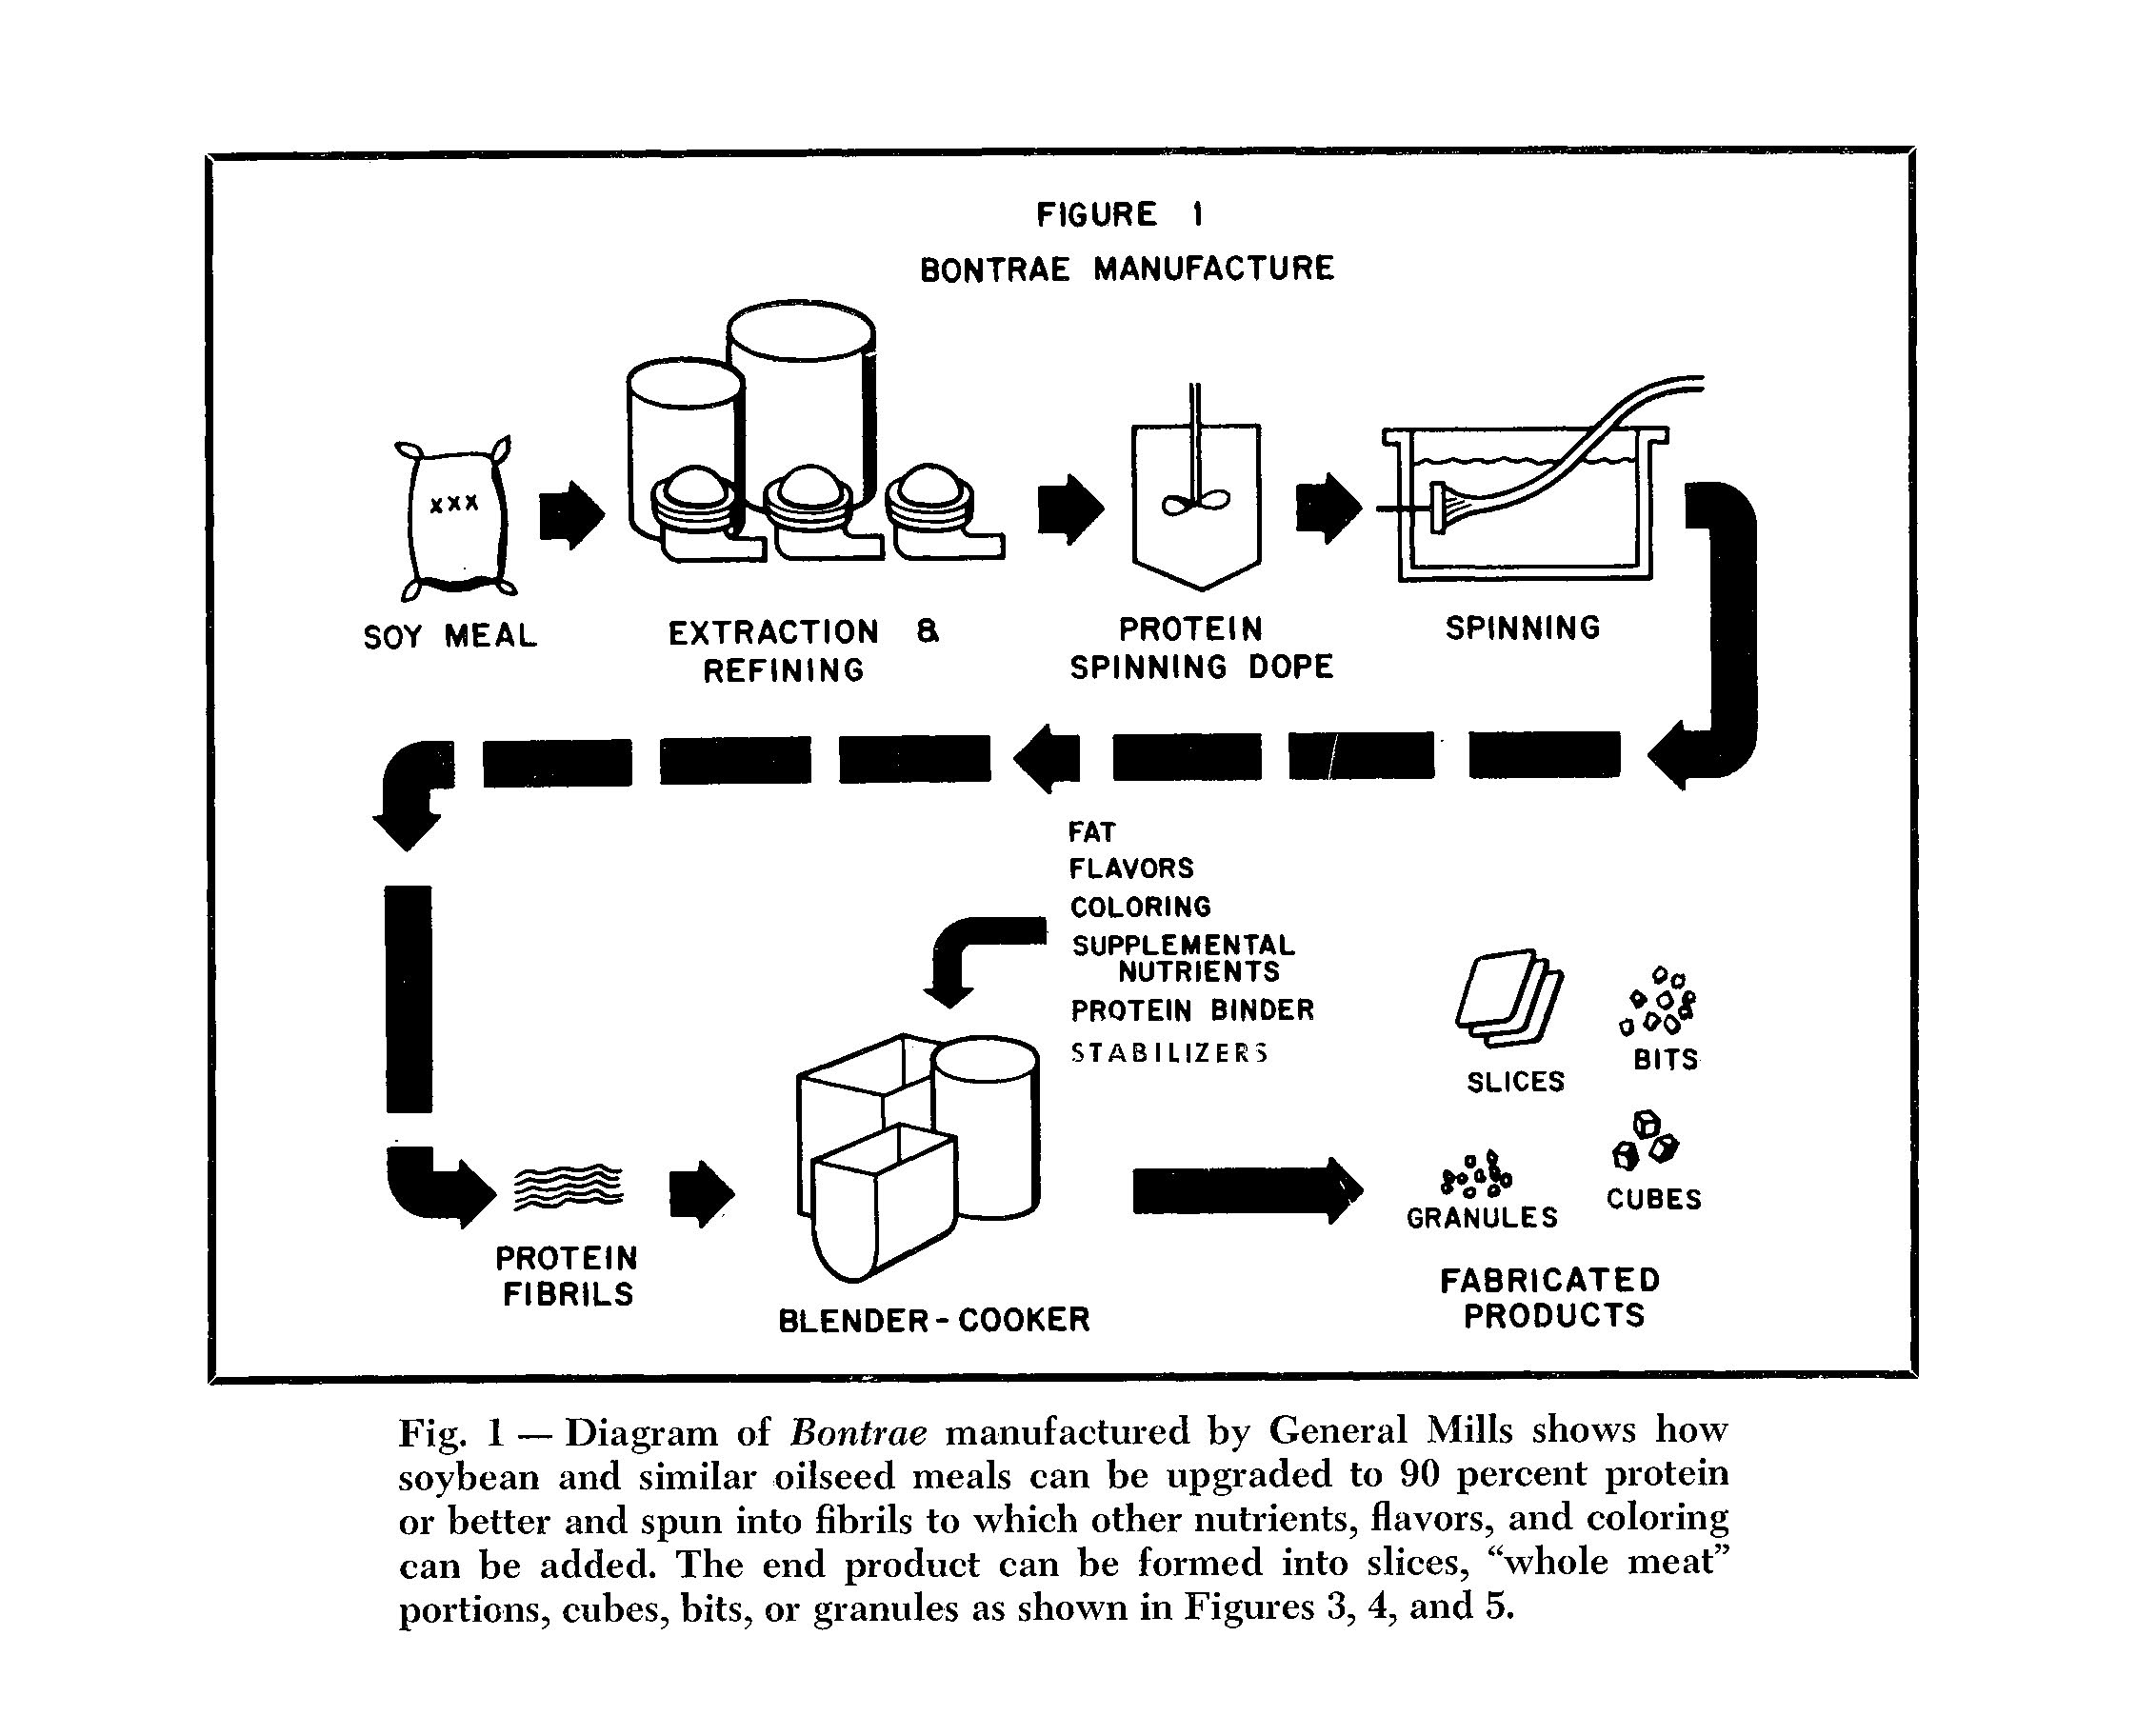 "Bontrae manufacturing flowchart. Bontrae was General Mills' proprietary name for their spun protein substance. [Click to expand.] Image source: A.D. Odell, ""Meat Analogues: A New Food Concept,""  Cornell H.R.A. Quarterly , August 1966. Odell headed General Mills' Isolated Protein research program at their Minneapolis R&D center."